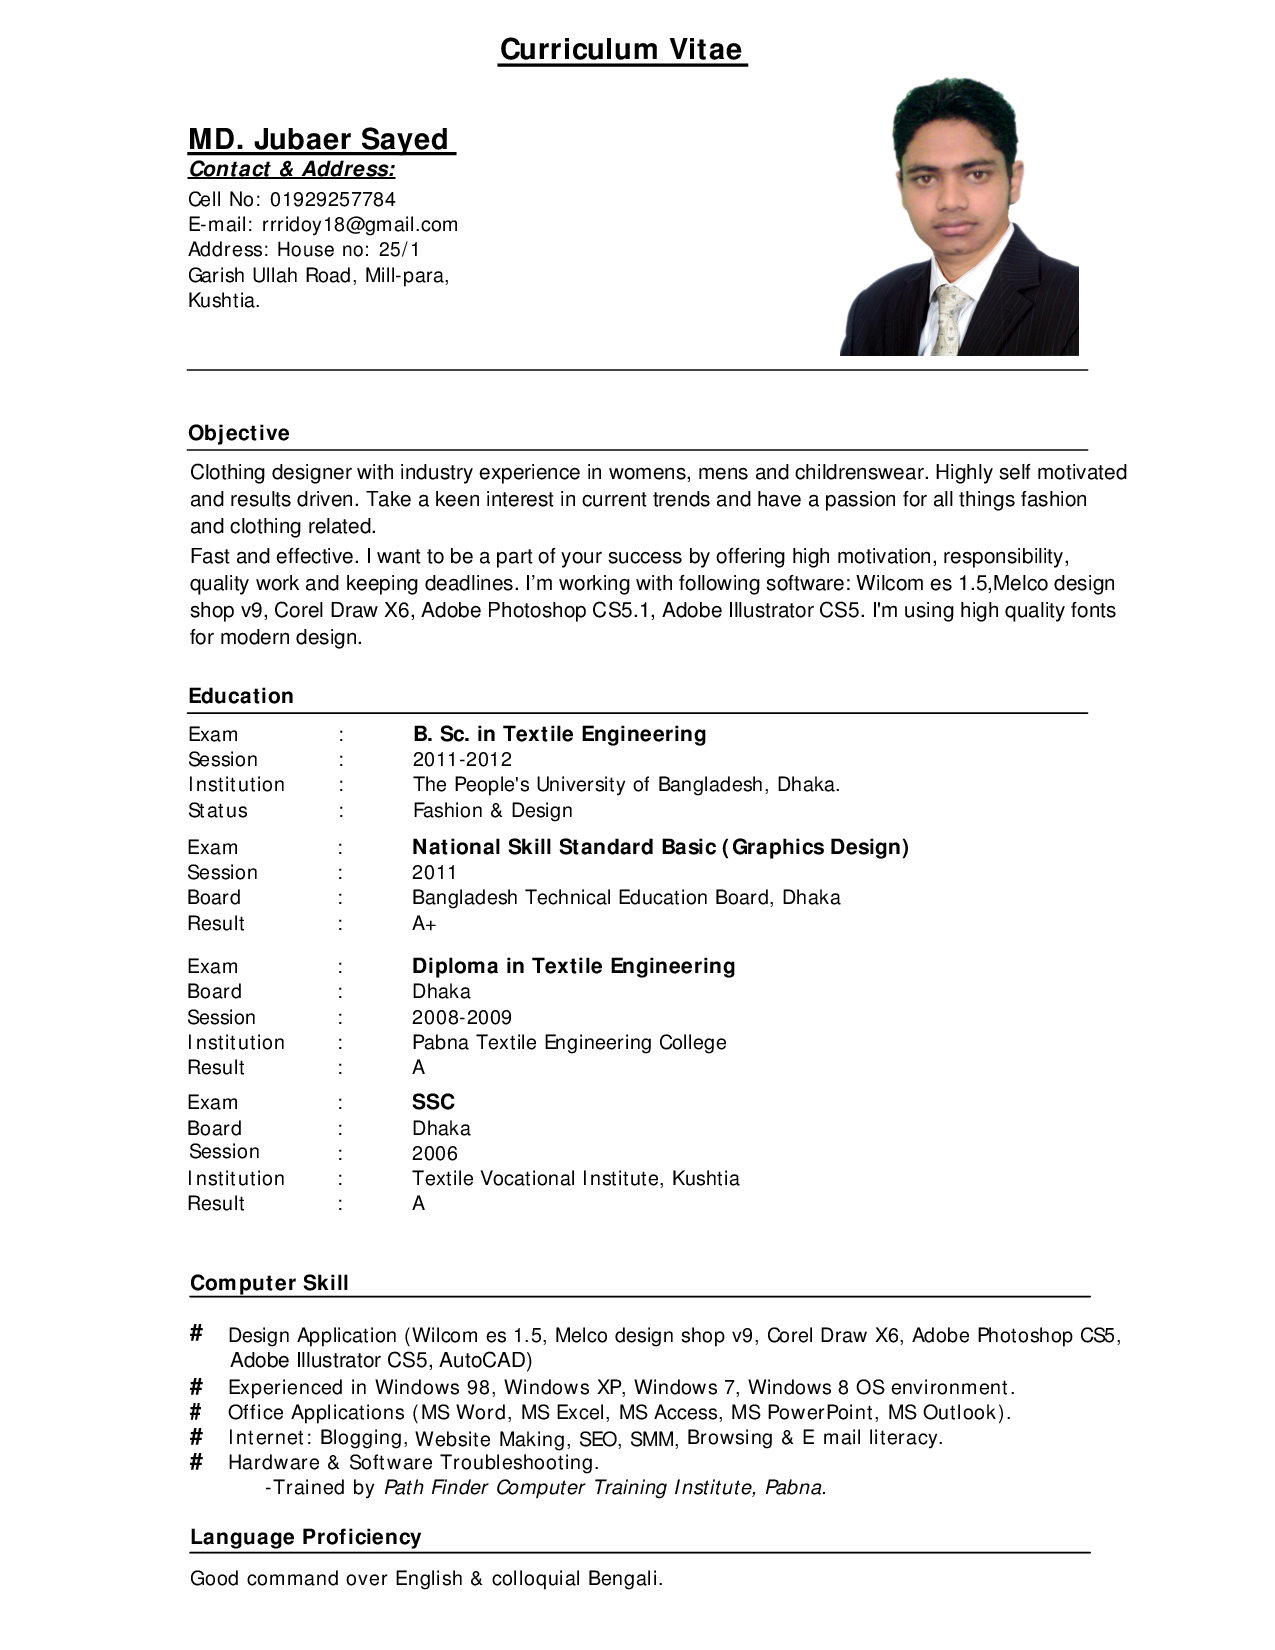 Example Resume puter Skills And Education For Curriculum Vitae